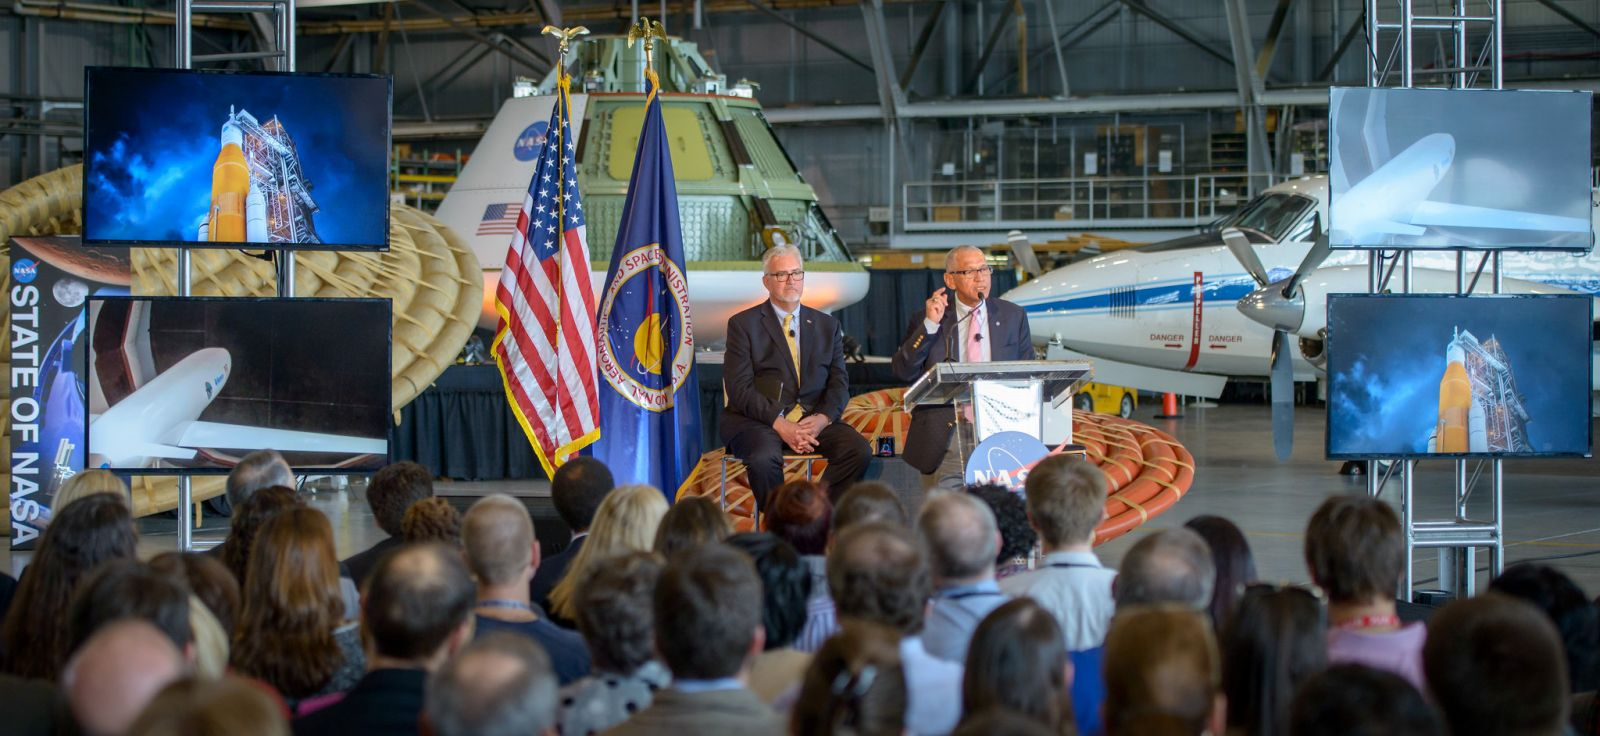 NASA Administrator Charles Bolden talks about the agency's scientific and technological achievements, and cutting-edge future work, including sending American astronauts to Mars in the 2030s, during a State of NASA event, as NASA Langley Center Director Dave Bowles looks on, Tuesday, Feb. 9, 2016 at the NASA Langley Research Center in Hampton, Virginia.